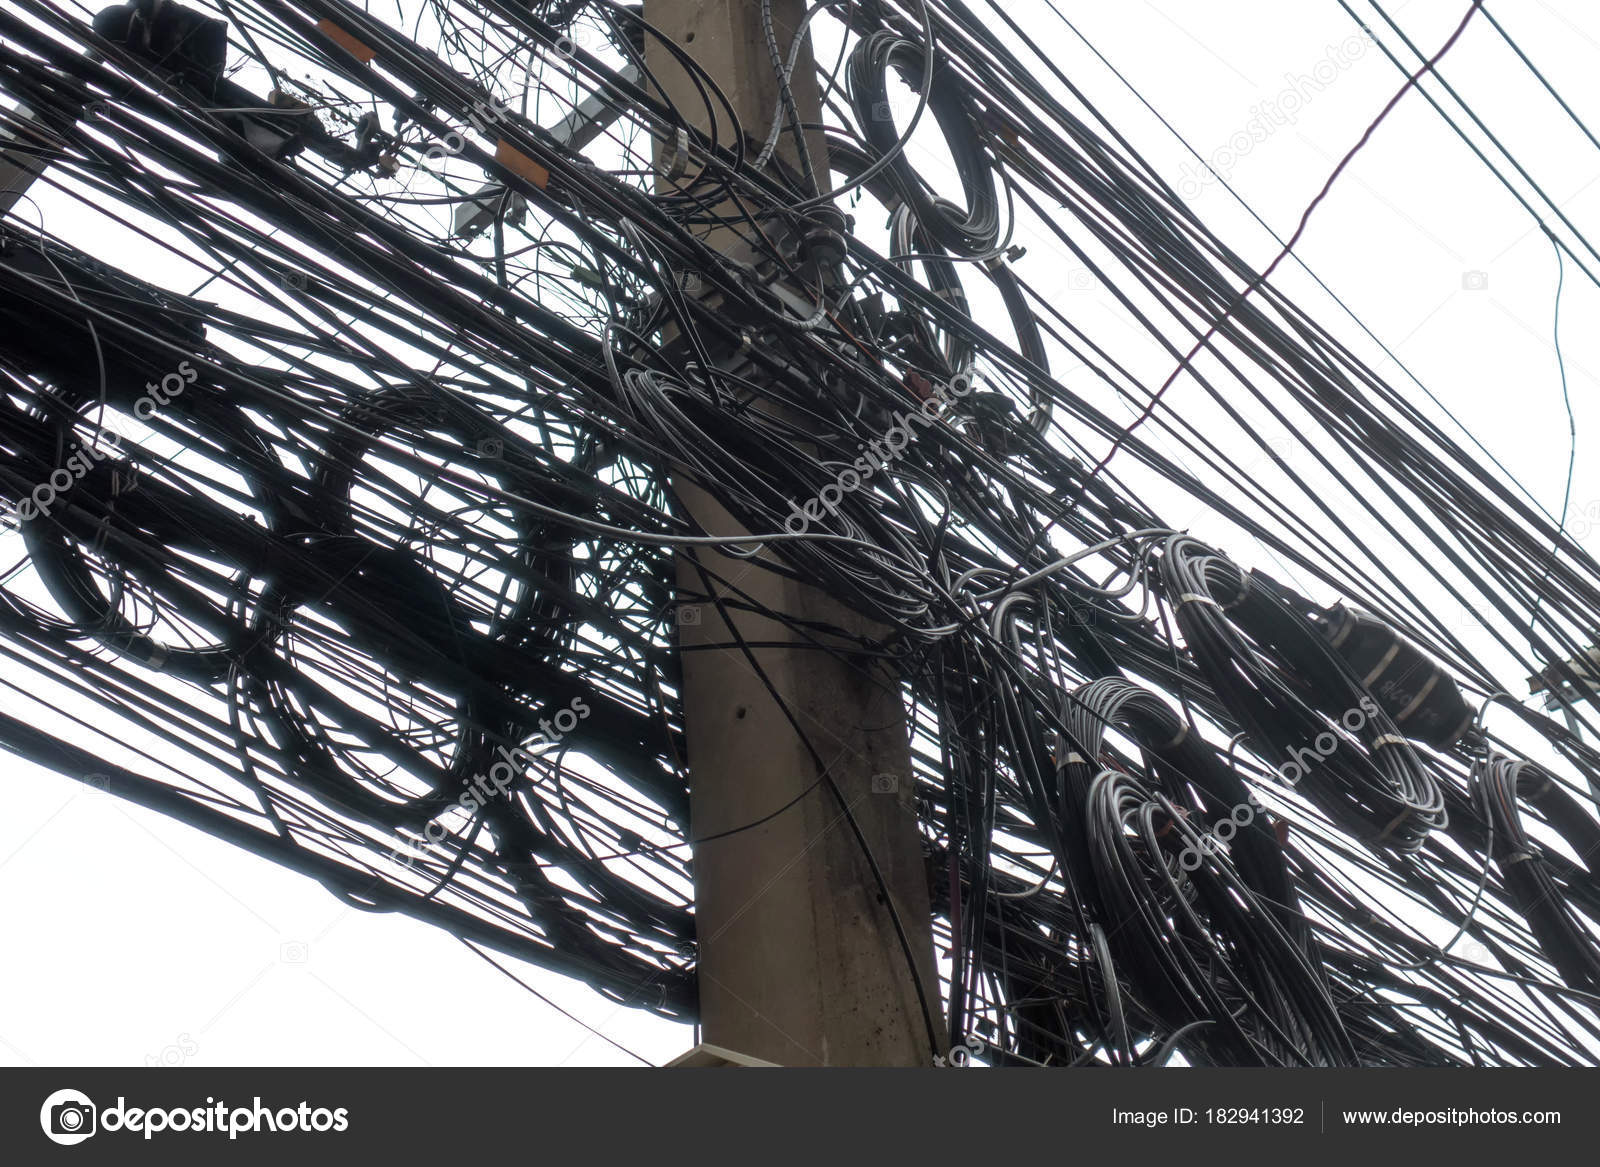 Messy Electrical Cables And Wires On Electric Pole Isolated Stock Photo C Tampatra Hotmail Com 182941392